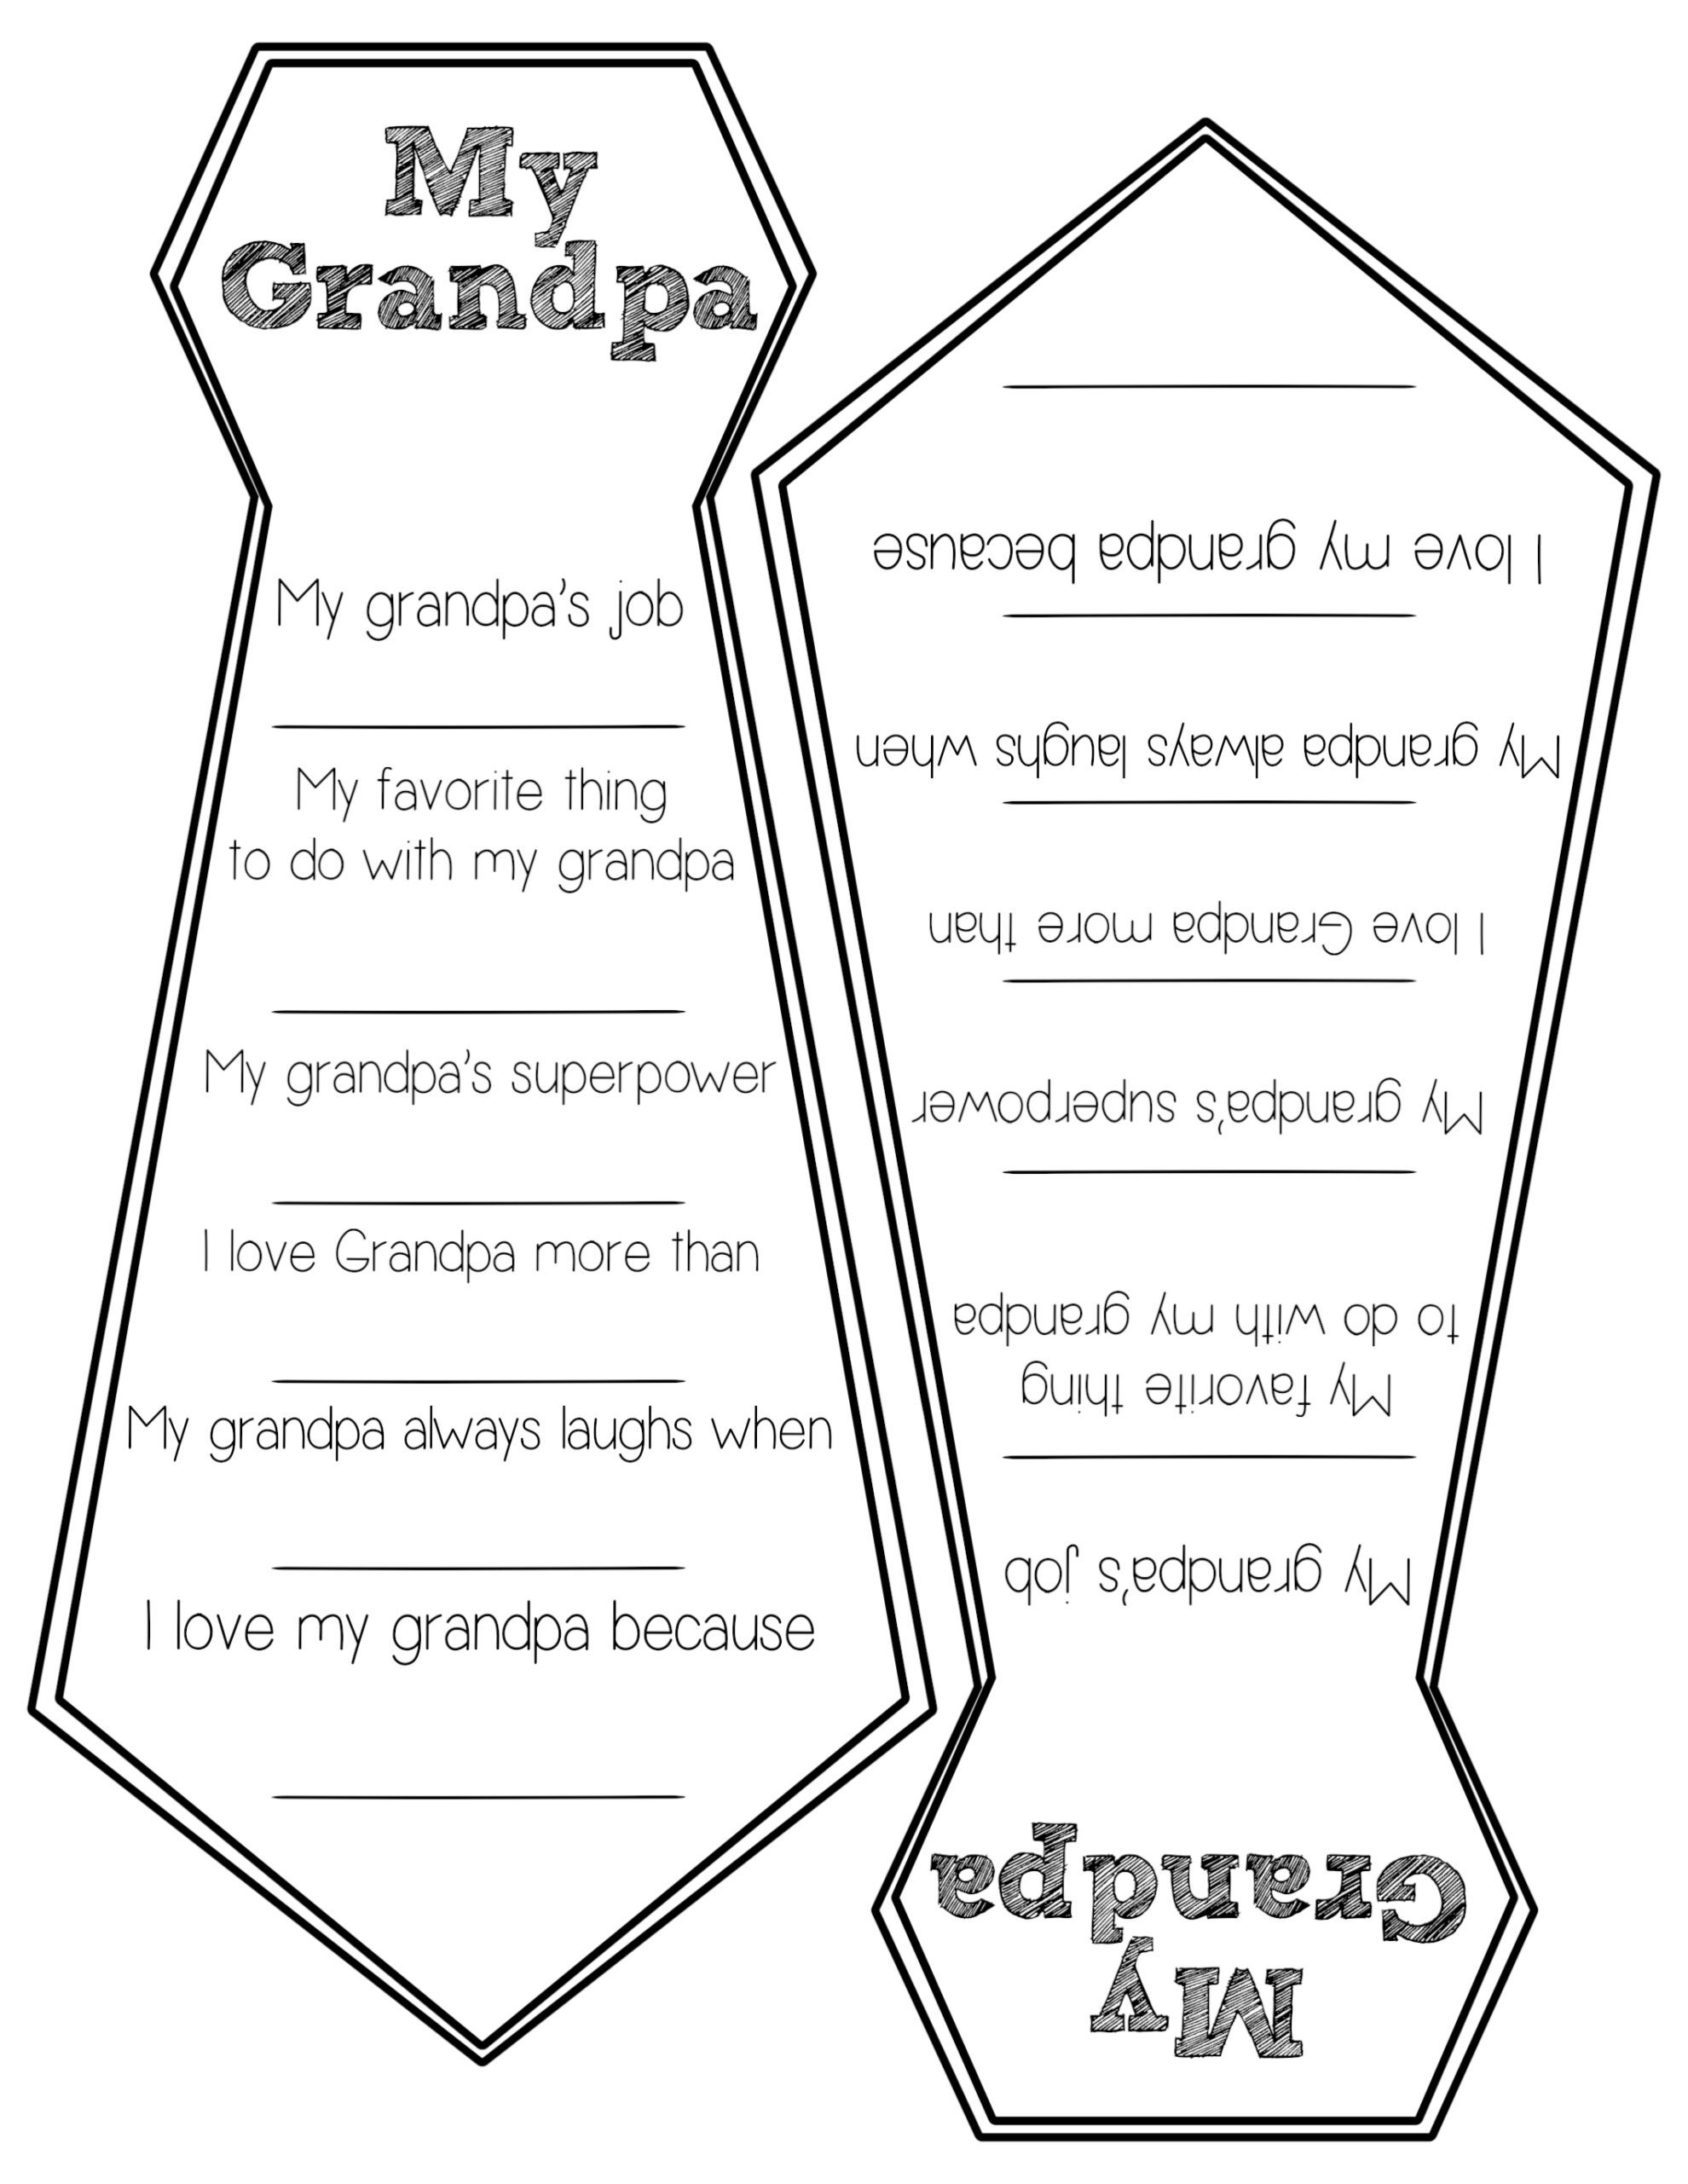 Father's Day Free Printable Cards - Paper Trail Design - Free Printable Father's Day Card From Wife To Husband